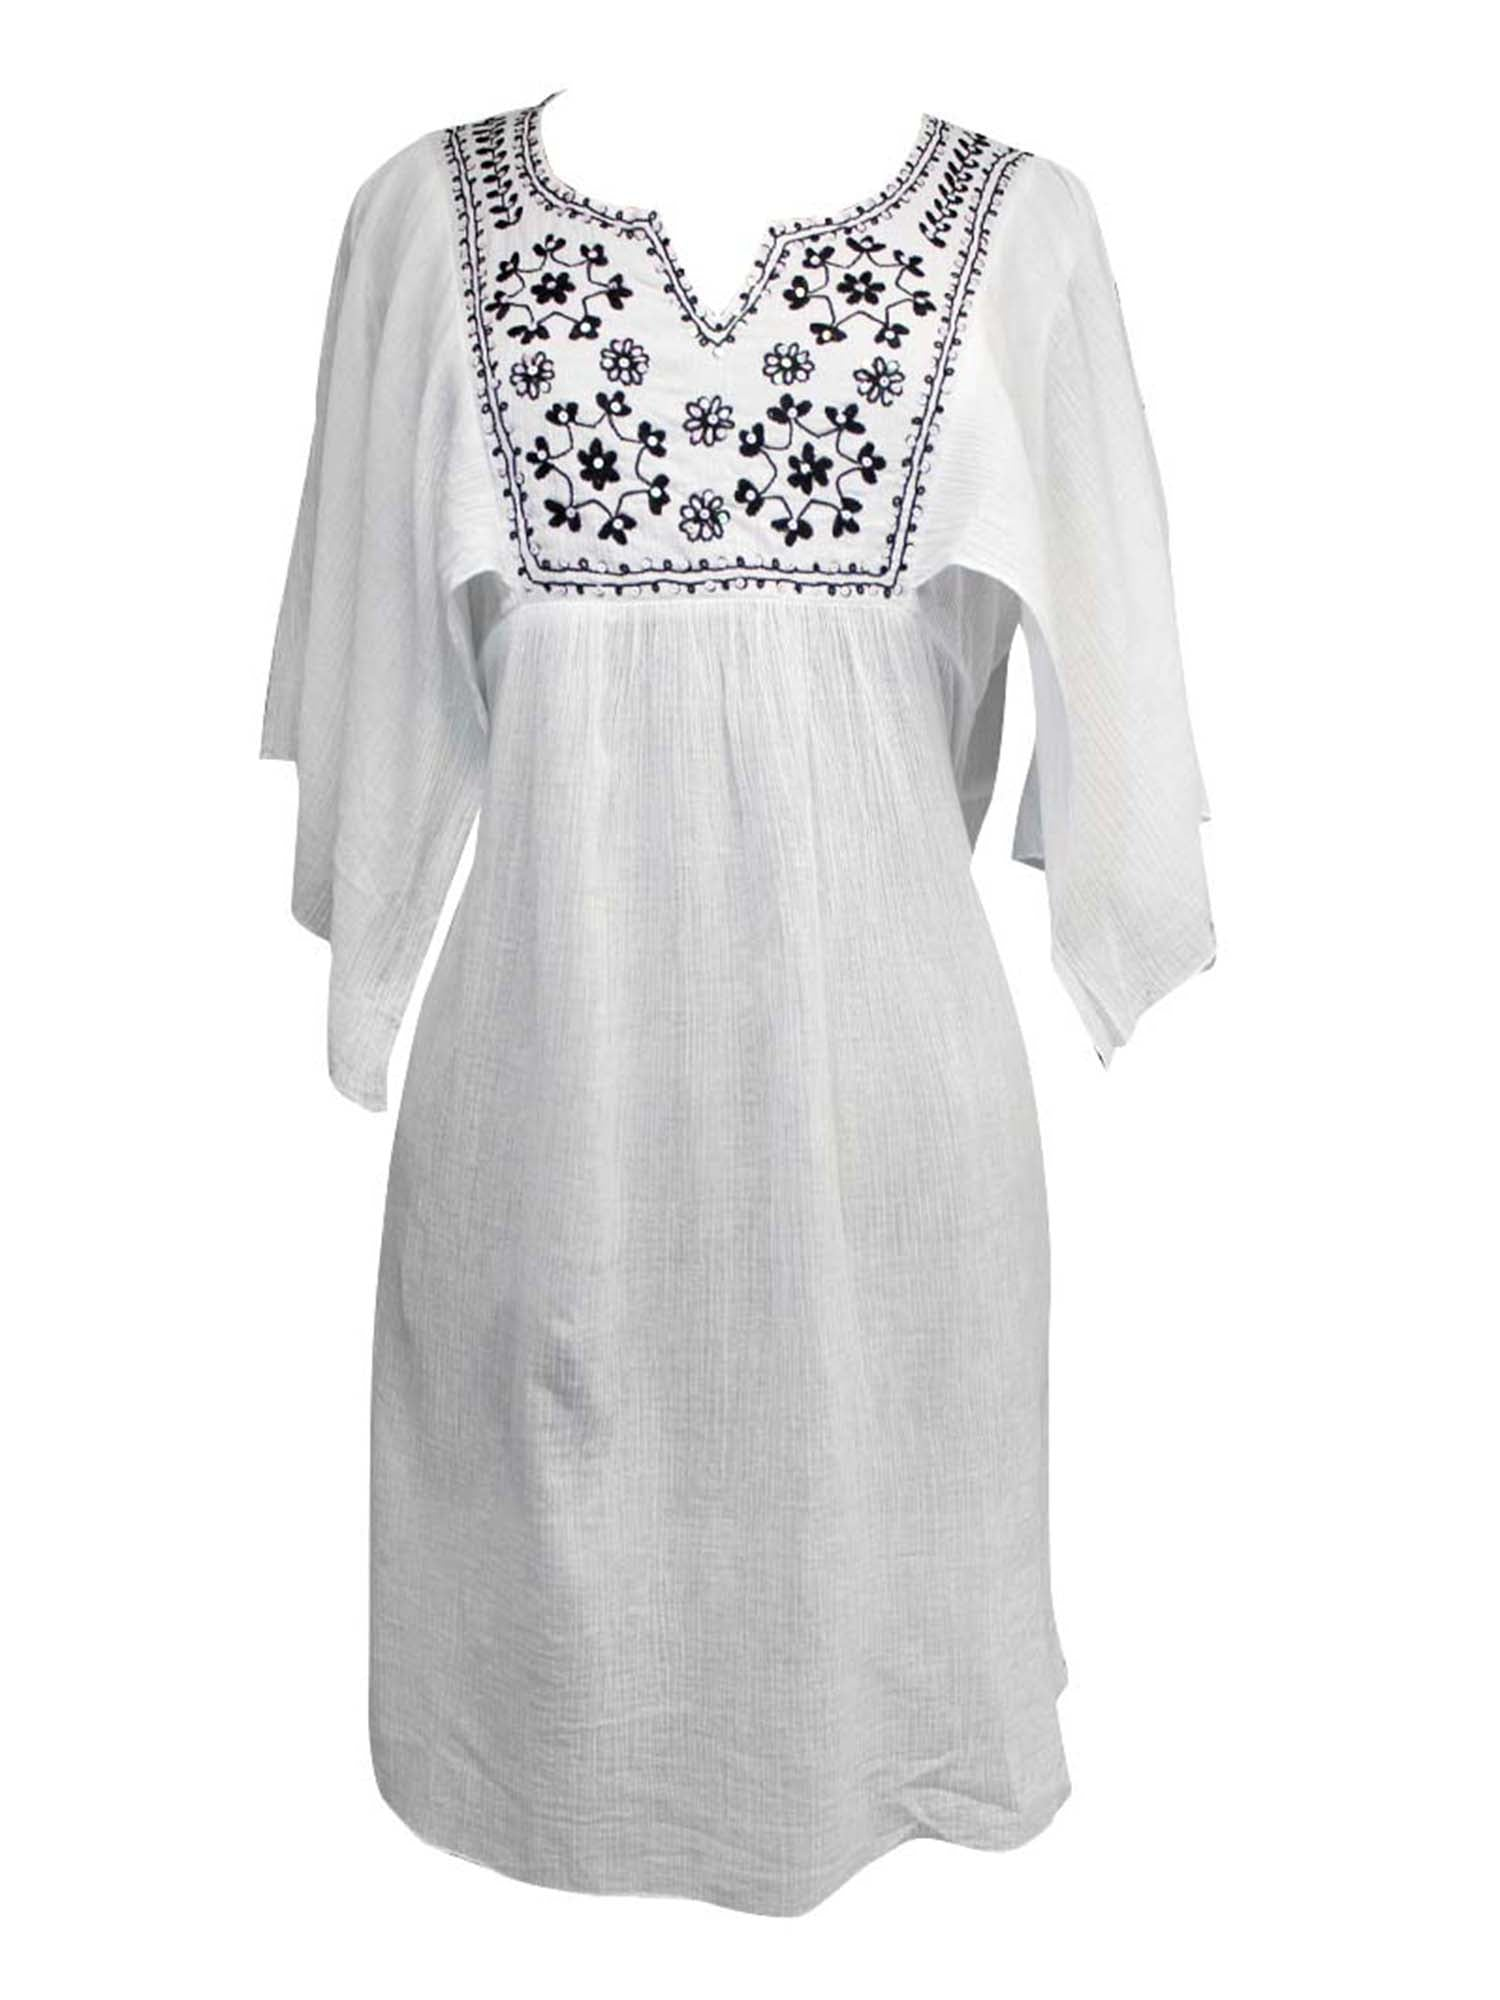 White With Embroidery Cotton Tunic Beach Cover-Up